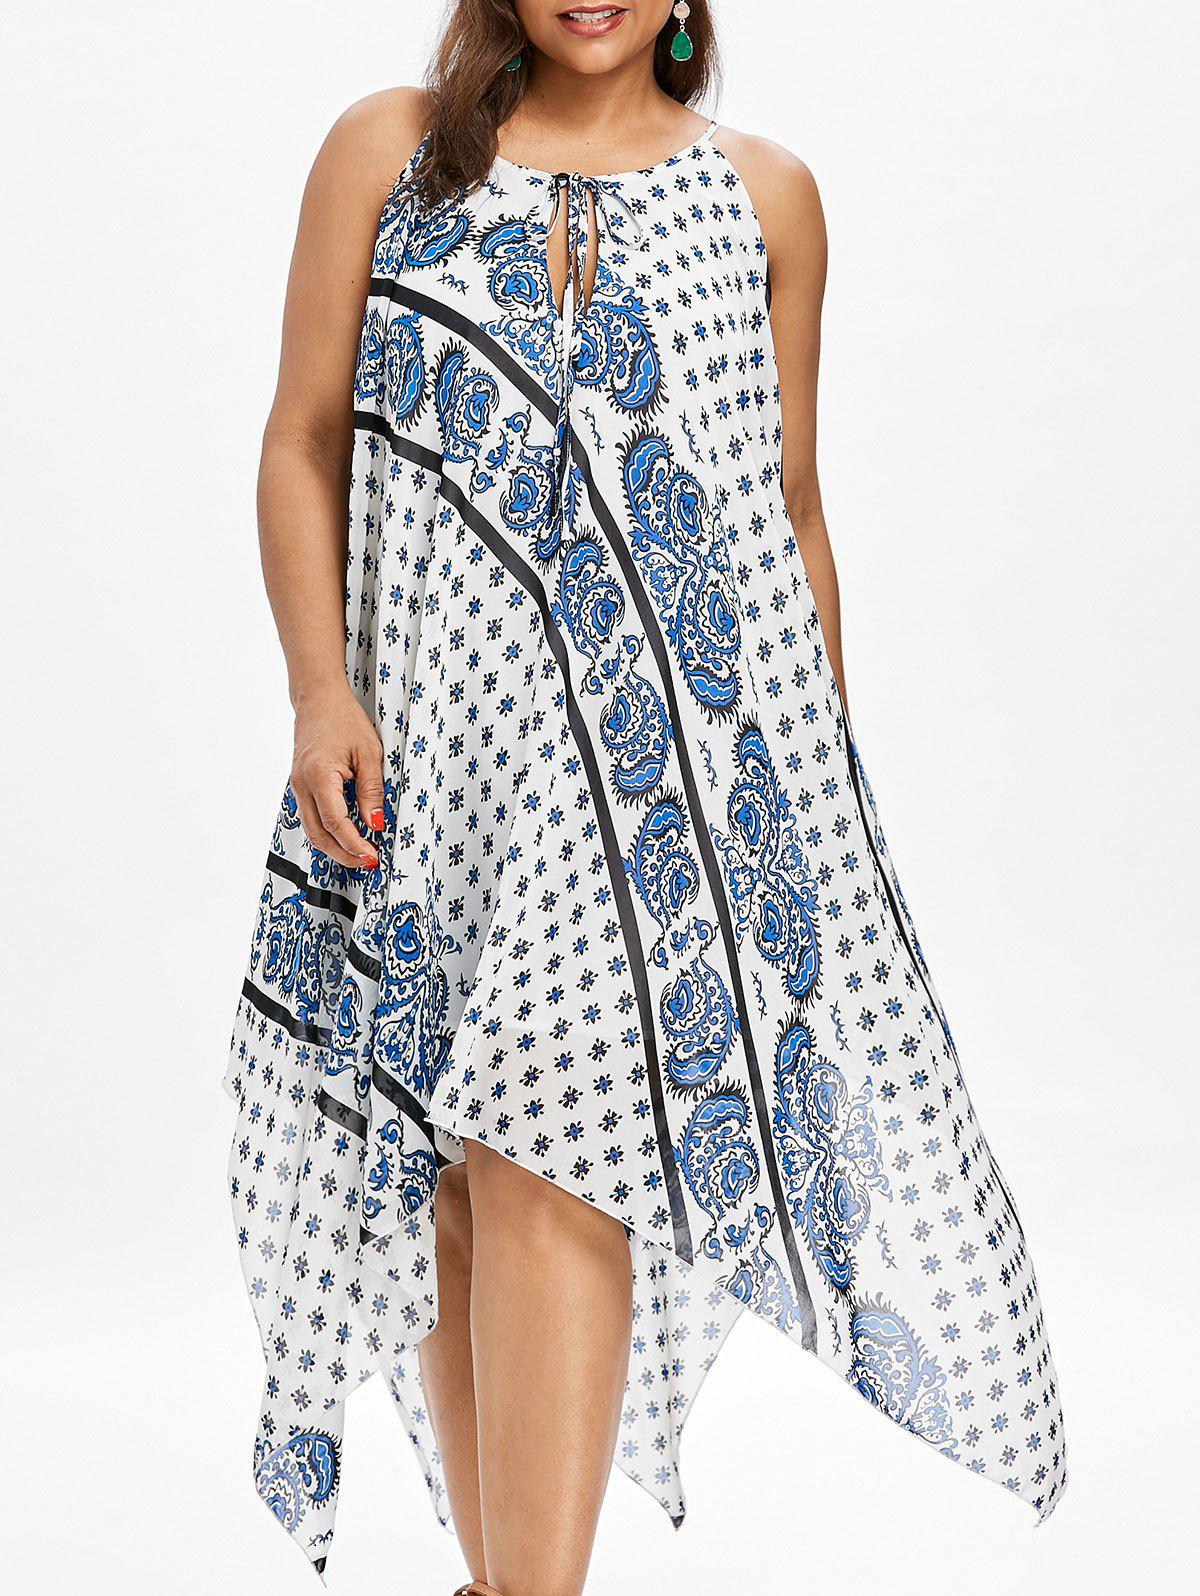 Buy Paisley Print Plus Size Handkerchief Dress